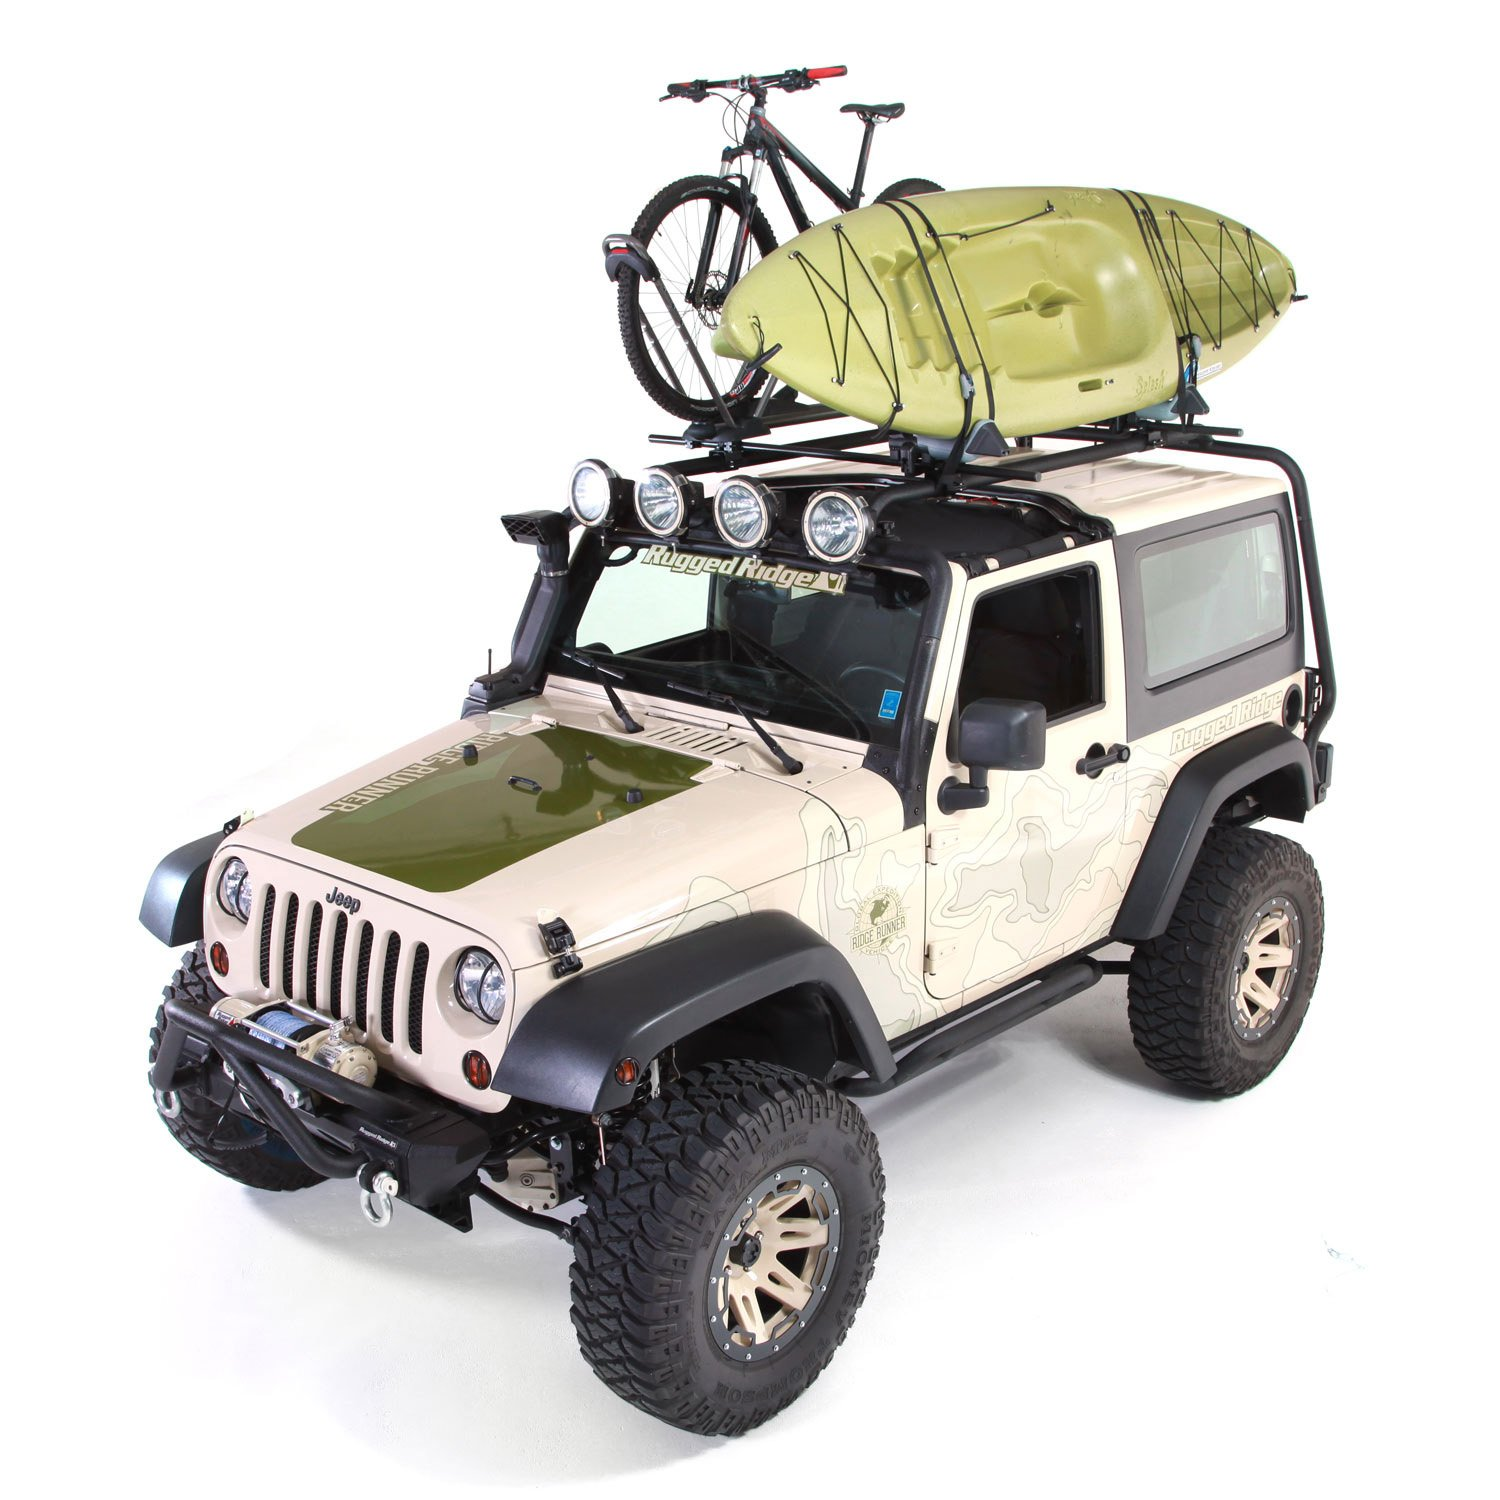 Rugged Ridge 11703.21 Sherpa Roof Rack Kit for Jeep JK Wrangler (2-Door) by Rugged Ridge